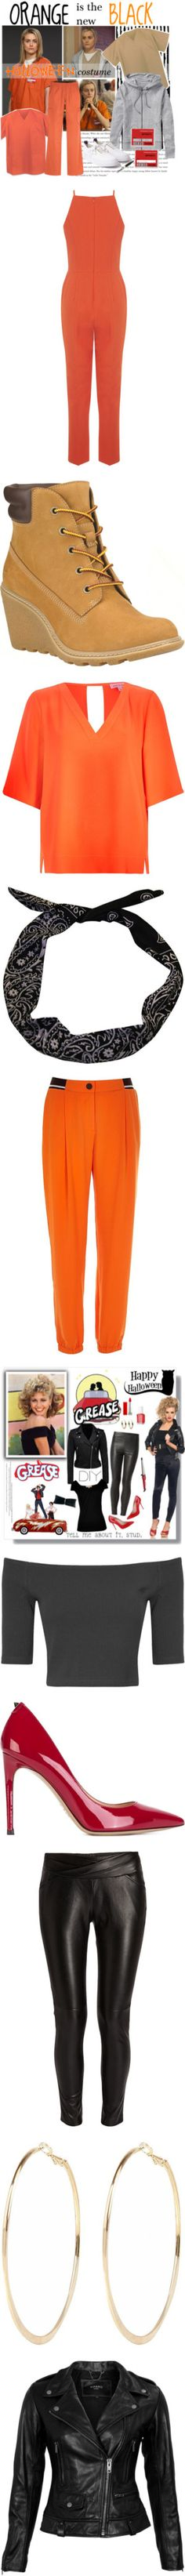 Lazy Girl's Guide to Halloween: 7 DIY Costumes by polyvore-editorial on Polyvore featuring Halloween, diycostume, Athleta, Eytys, halloweencostume, oitnb, DIYHalloween, jumpsuits, blood orange and petite